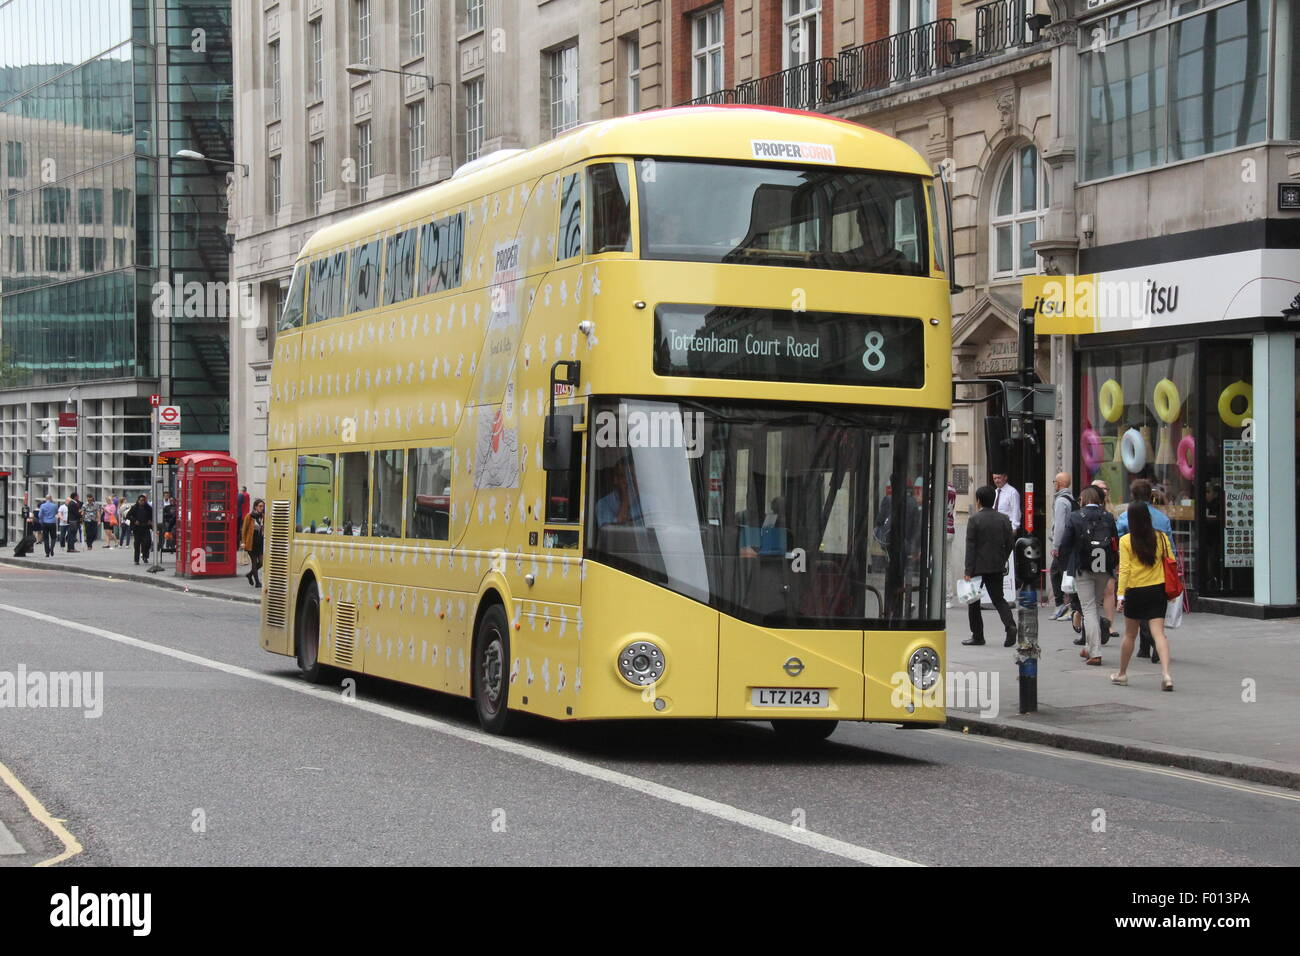 A New Routemaster London bus in a yellow advertising livery for proper corn - Stock Image